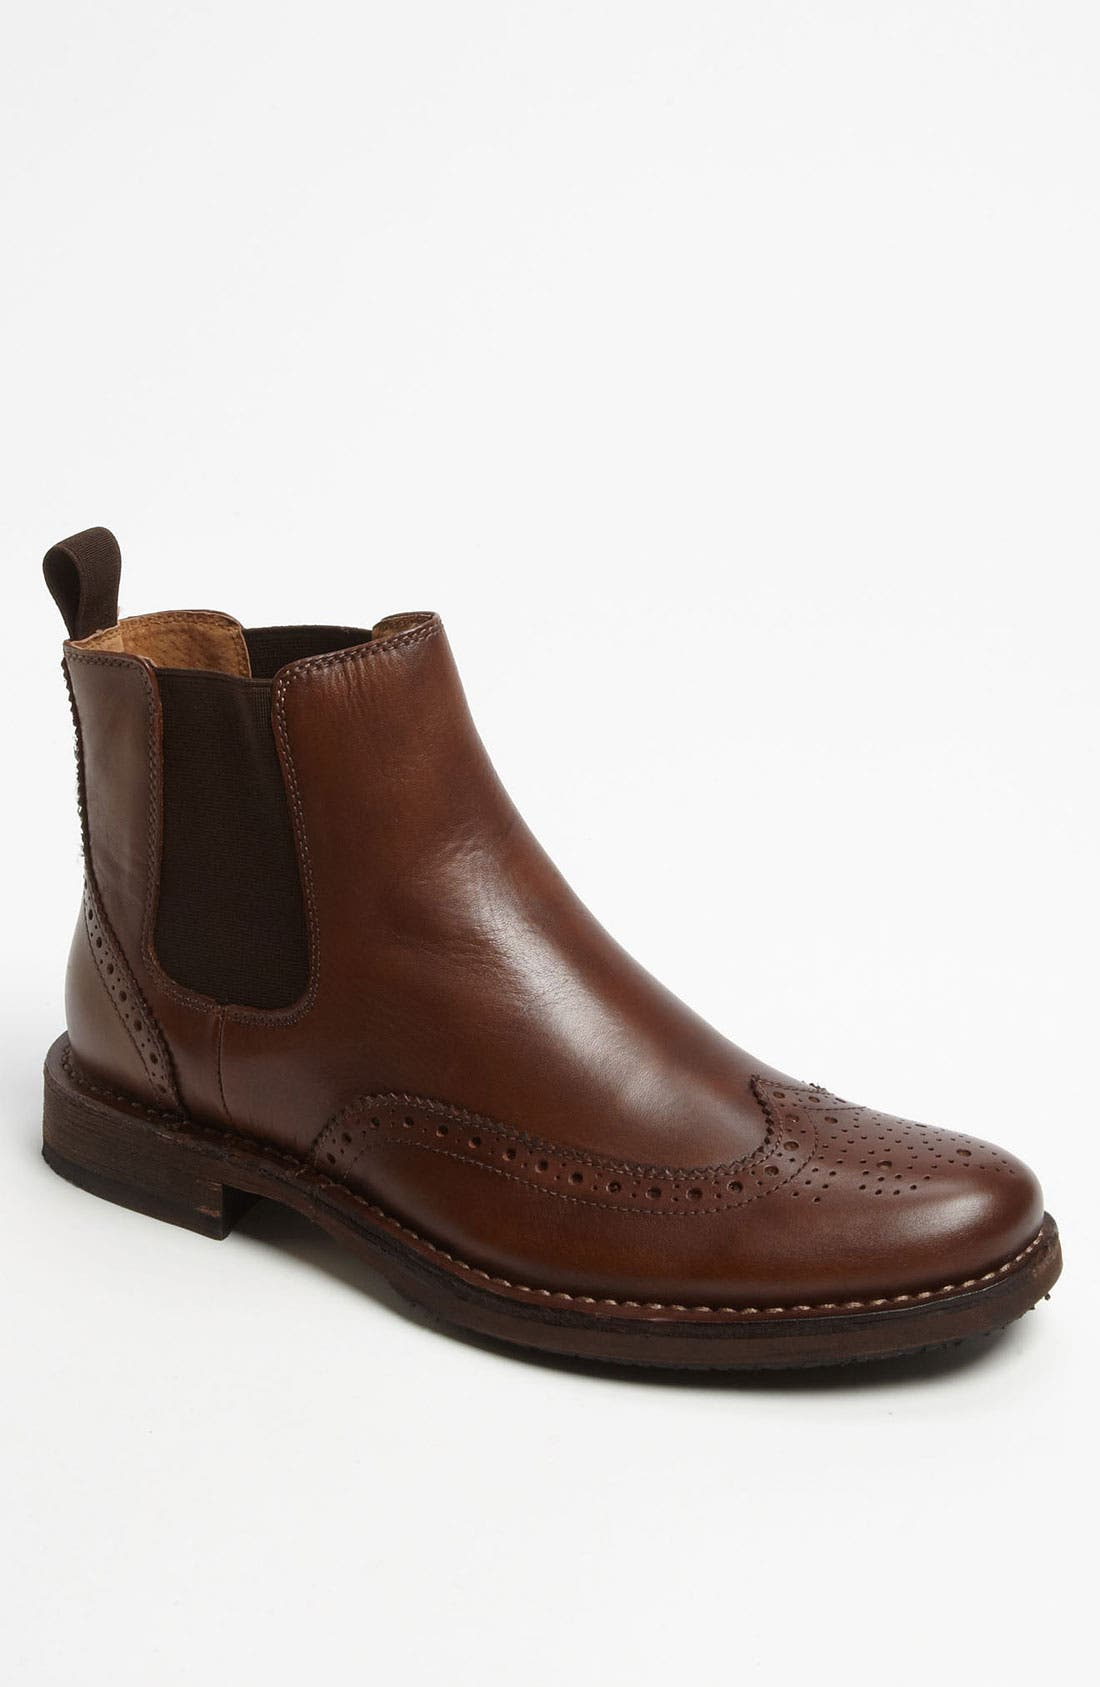 Main Image - Florsheim 'Cobblestone' Wingtip Chelsea Boot (Online Only)